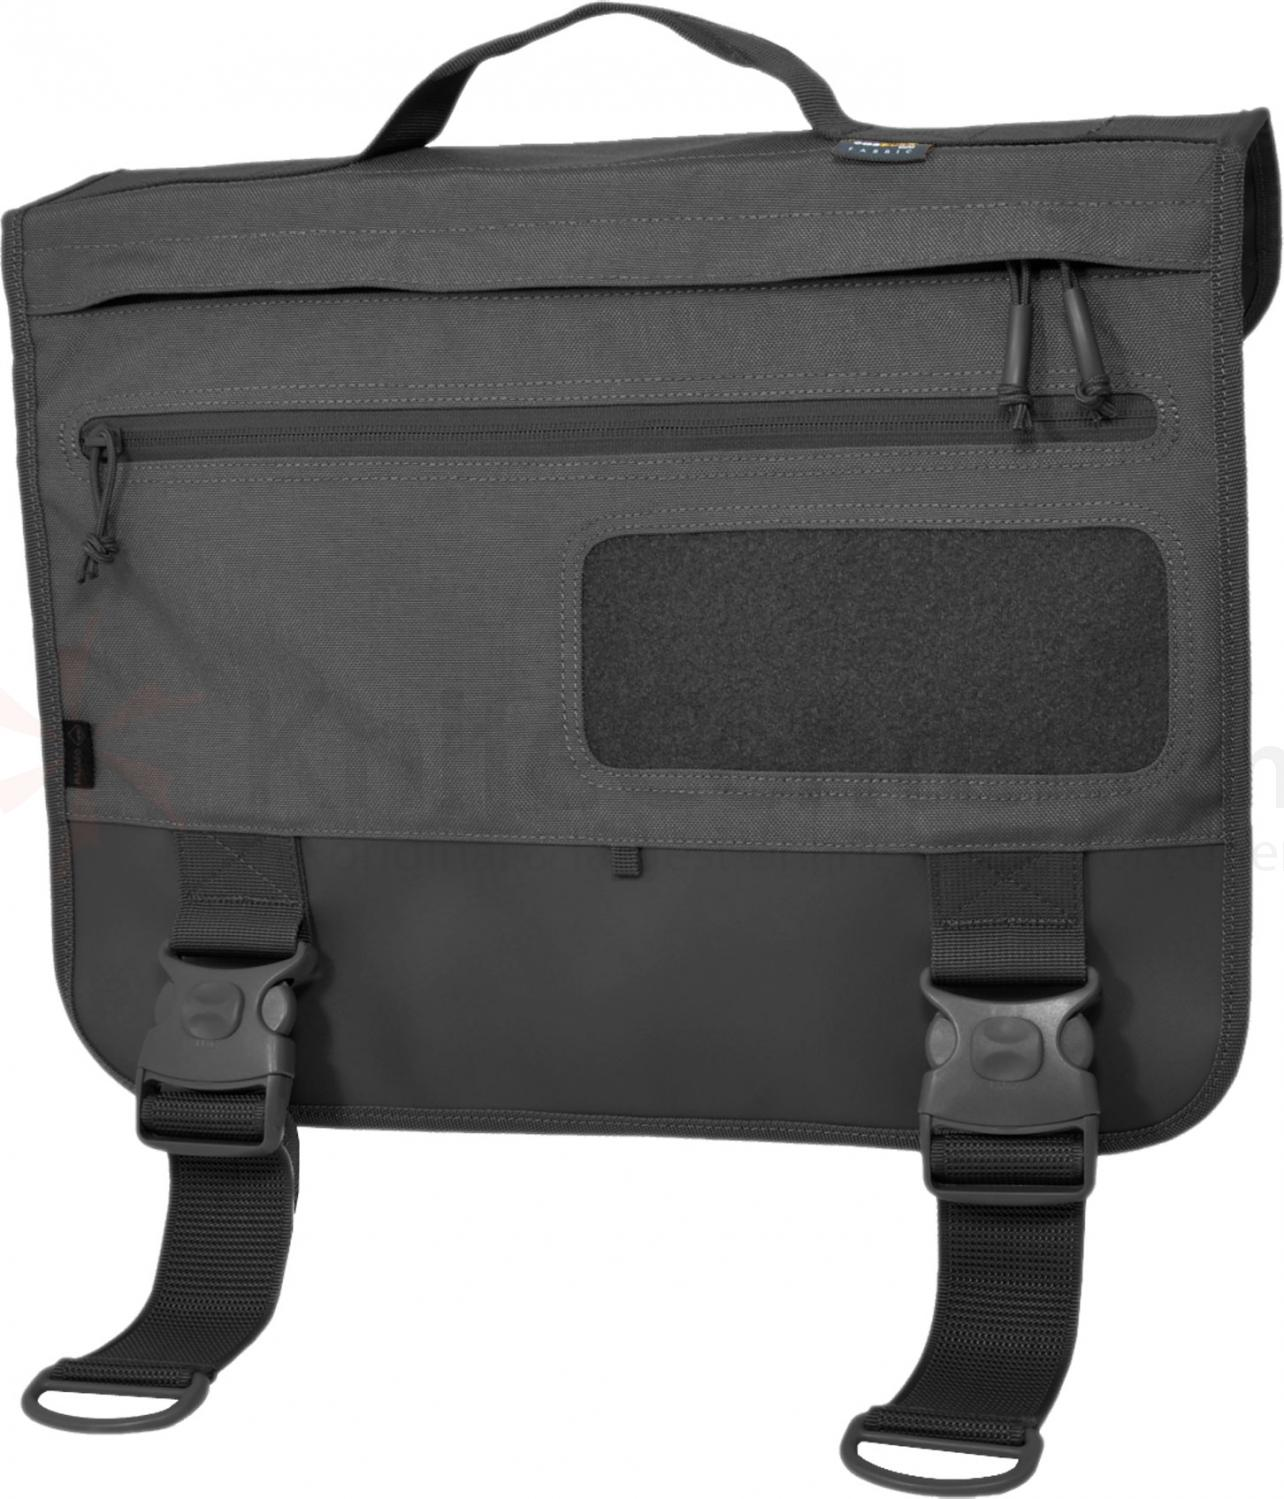 Hazard 4 Removable Flap for Ditch Bag, Black